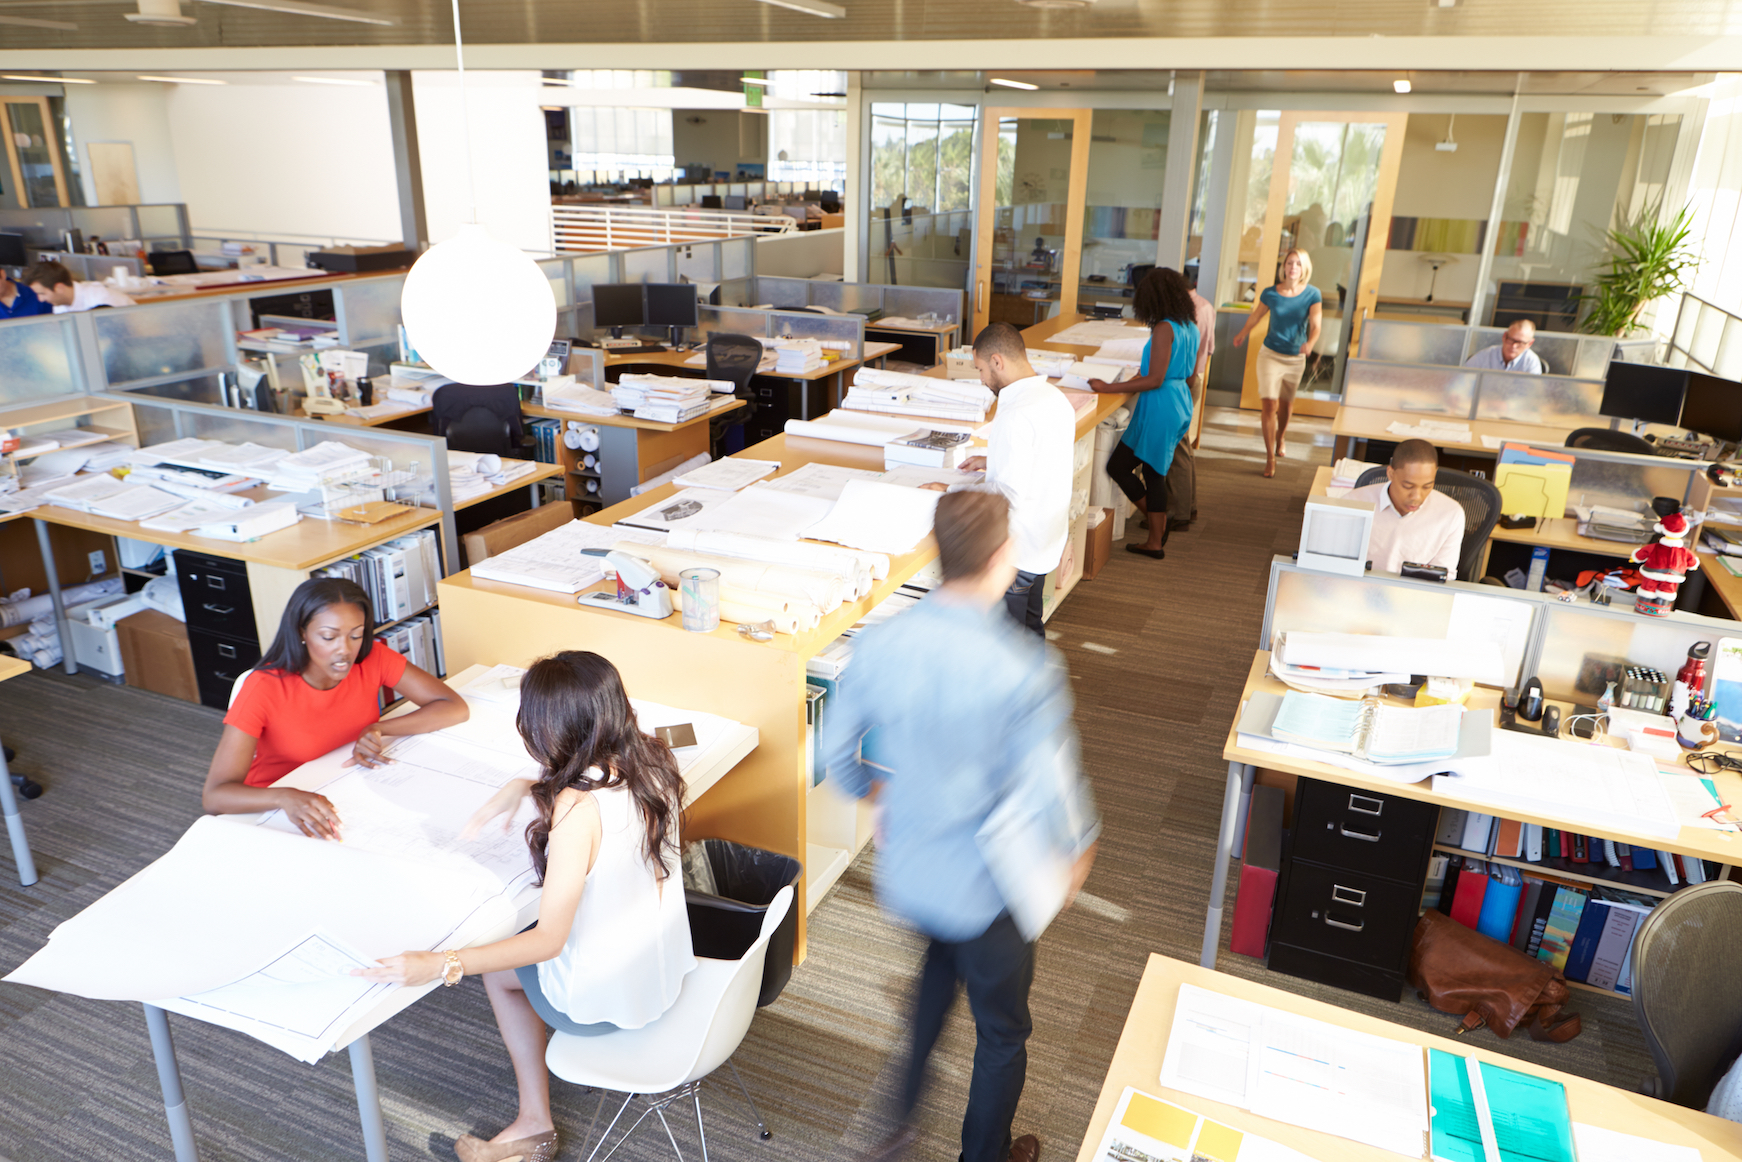 According to a new report, the trendy open office plan actually leads to an increase in distractions and a decrease in efficiency.